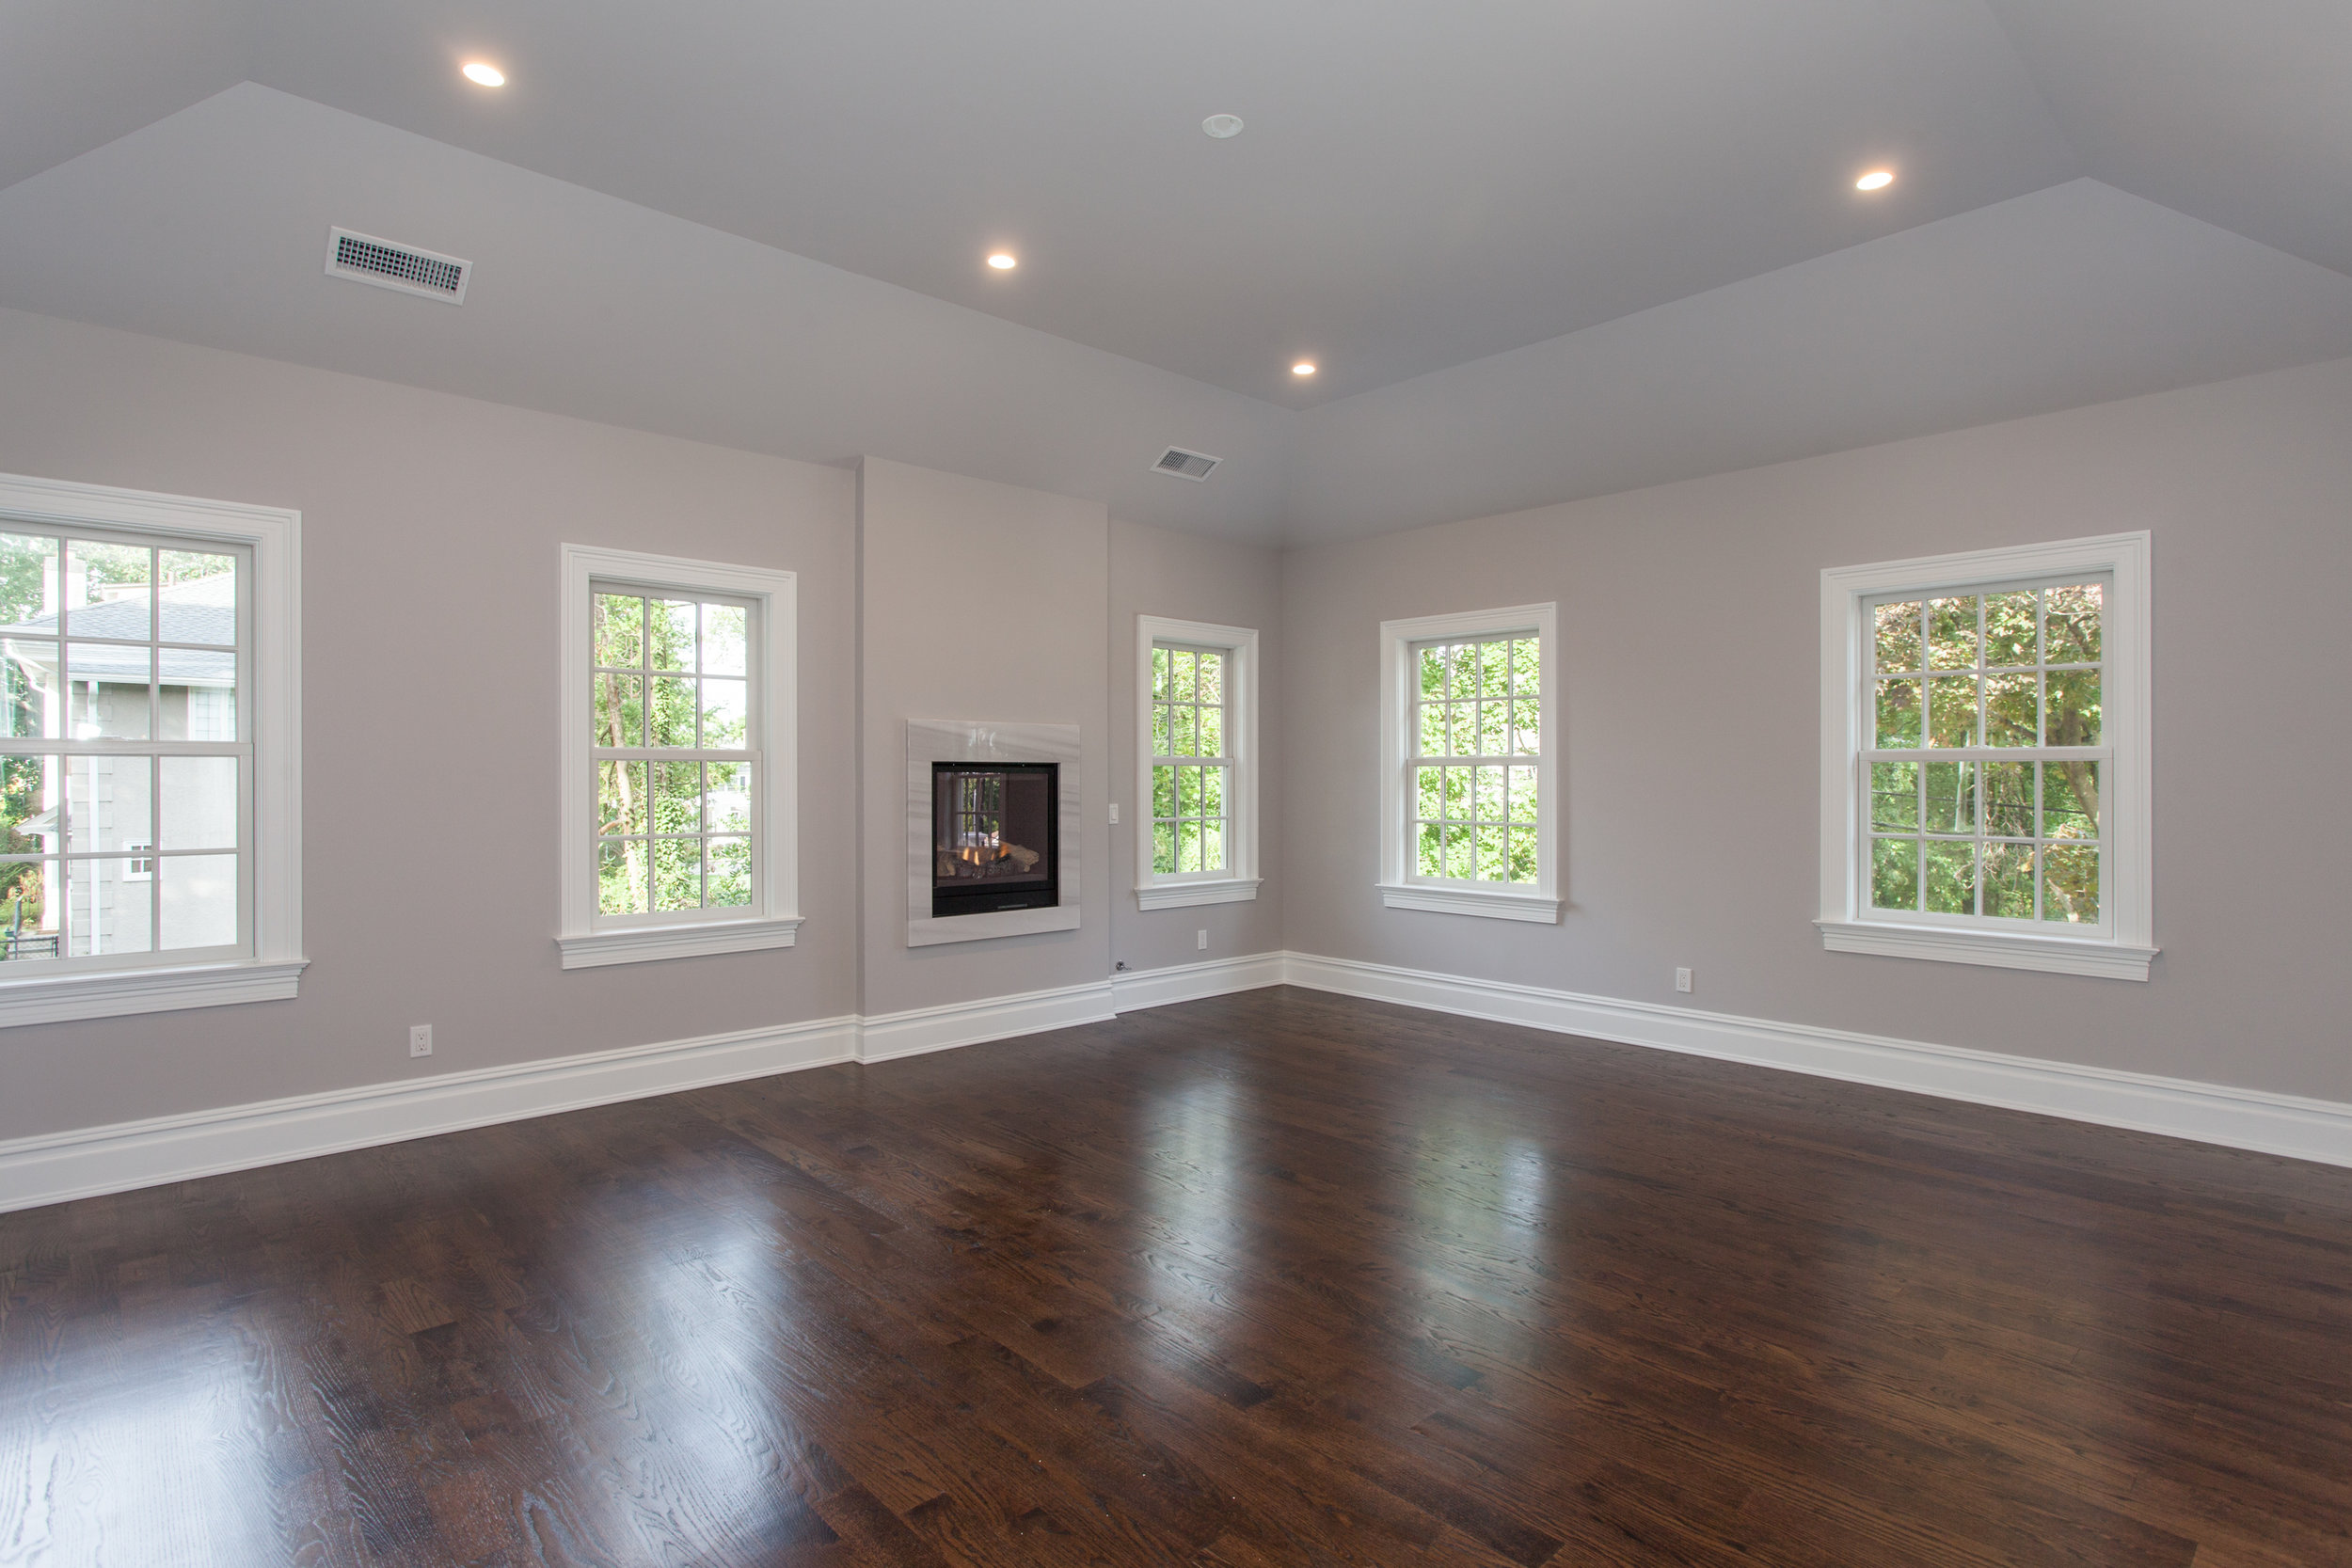 GRAND MASTER SUITE |  Boasts 11 ft tray ceiling and remote-controlled fireplace.